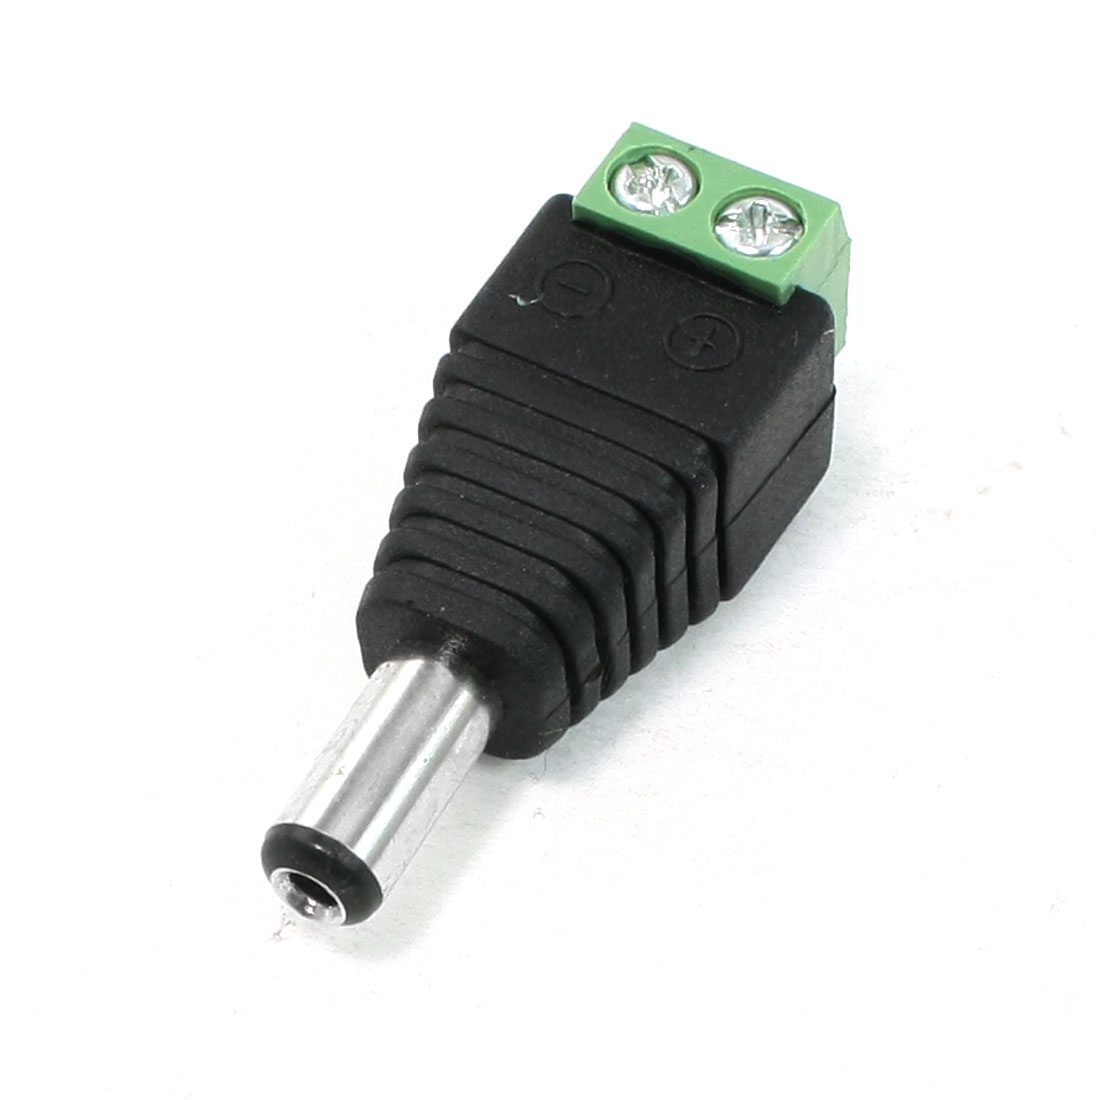 CCTV Video Camera DC Male Power Connector Adapter 5.5mm x 2.1mm